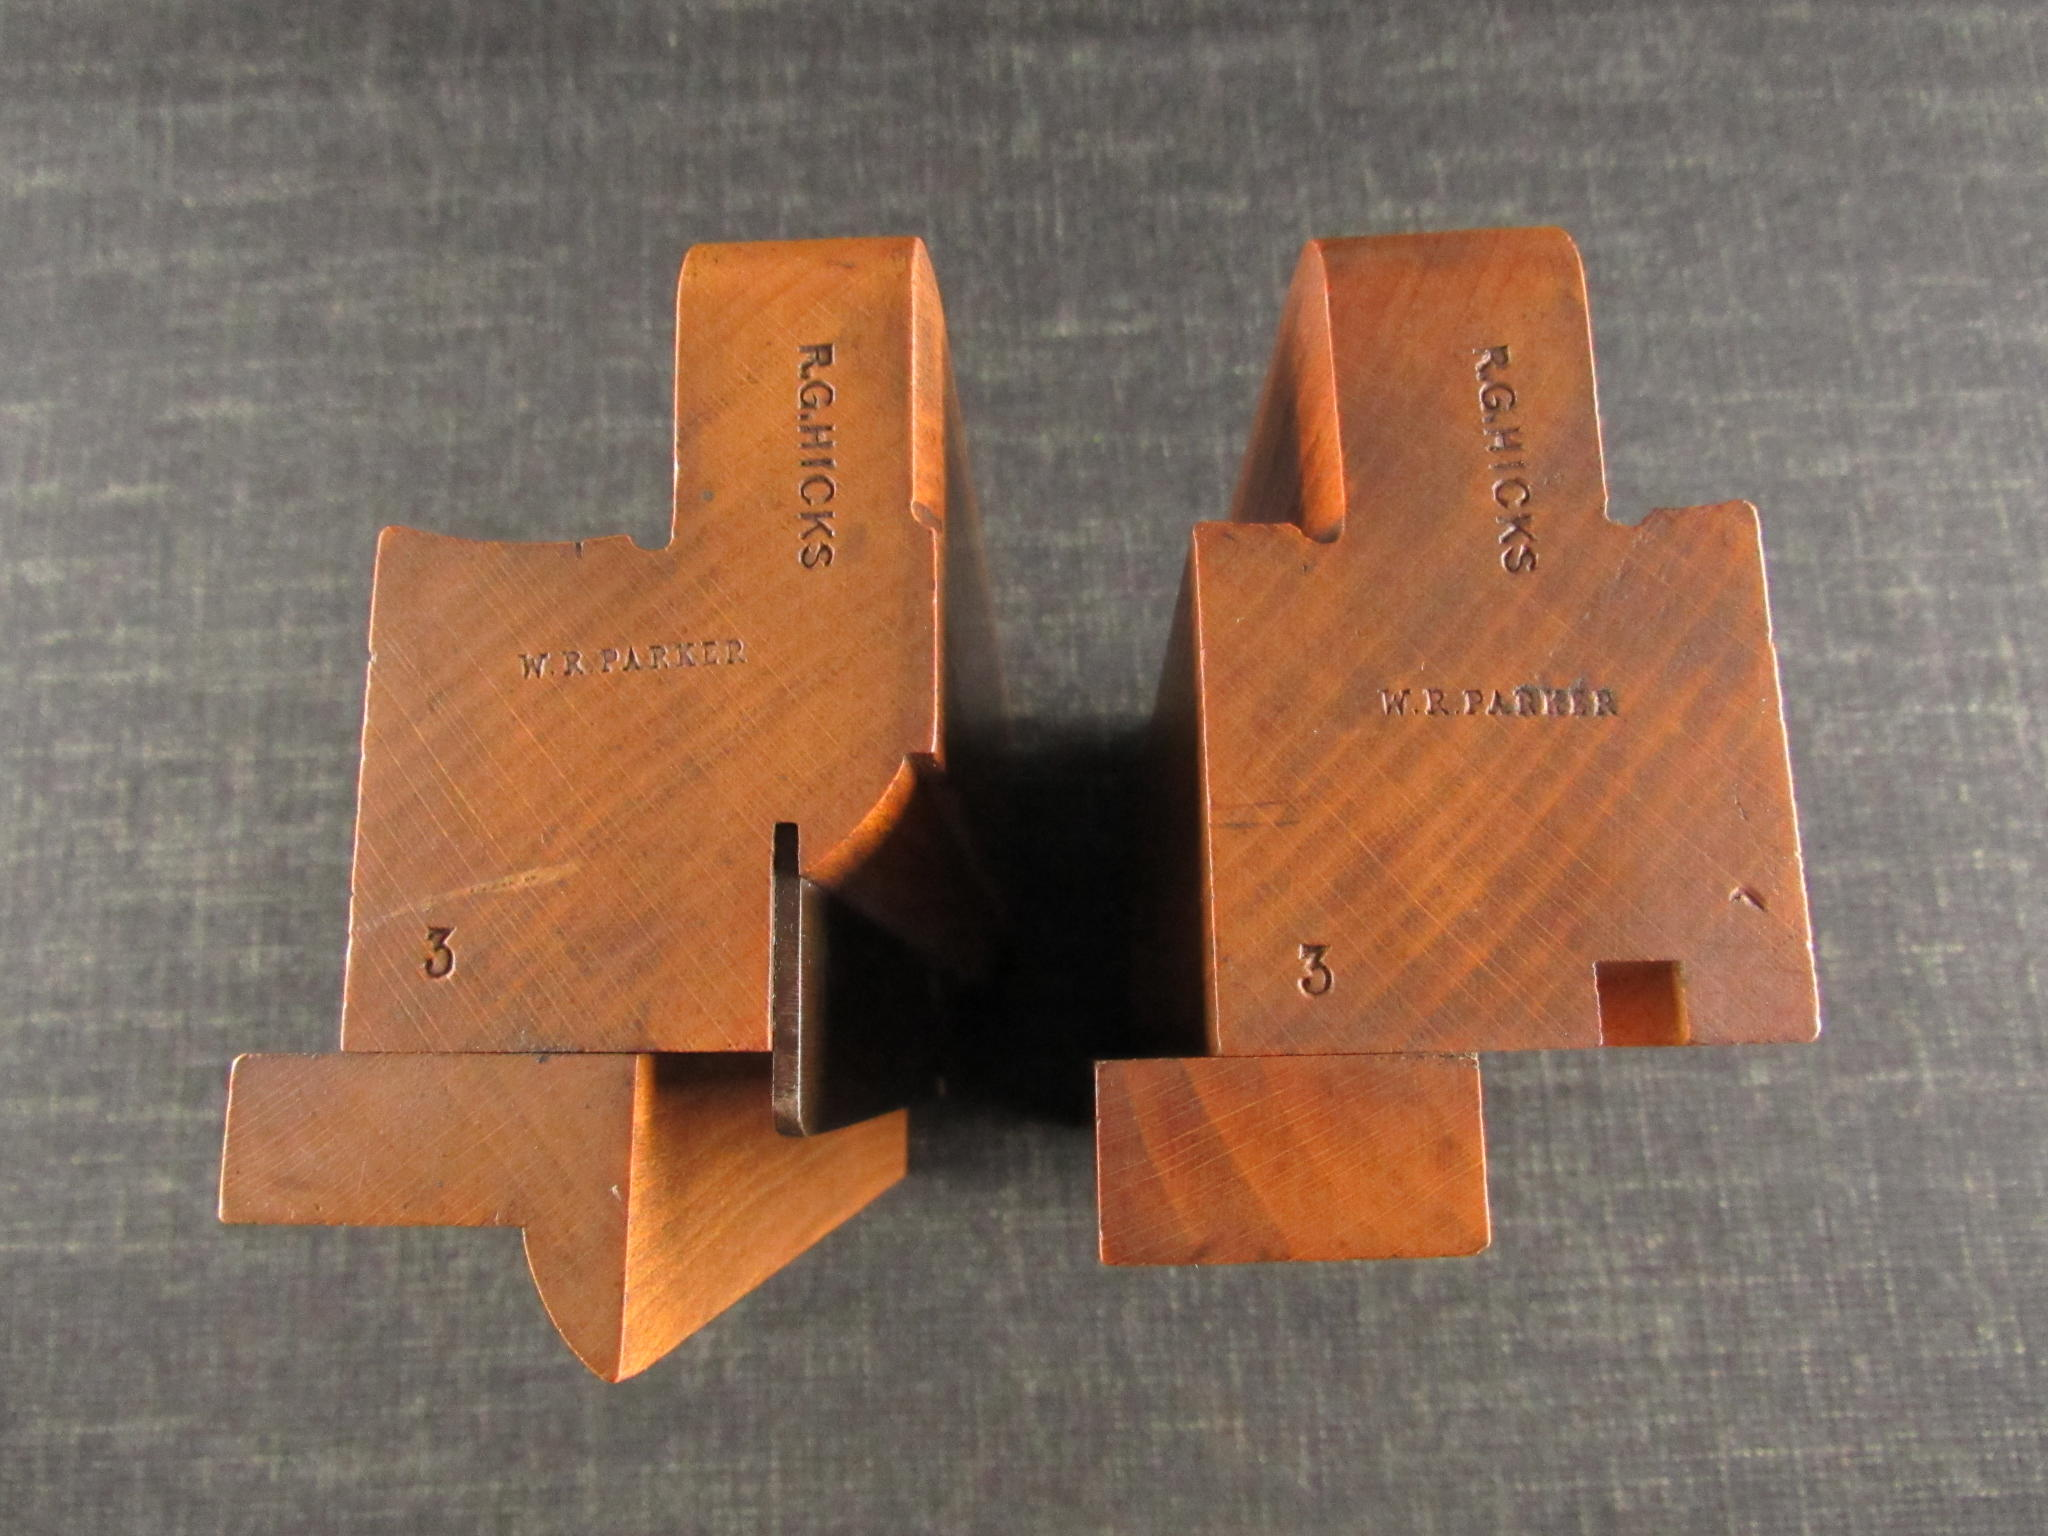 Rare Pair of Adjustable Tongue & Groove Match Planes by GRIFFITHS